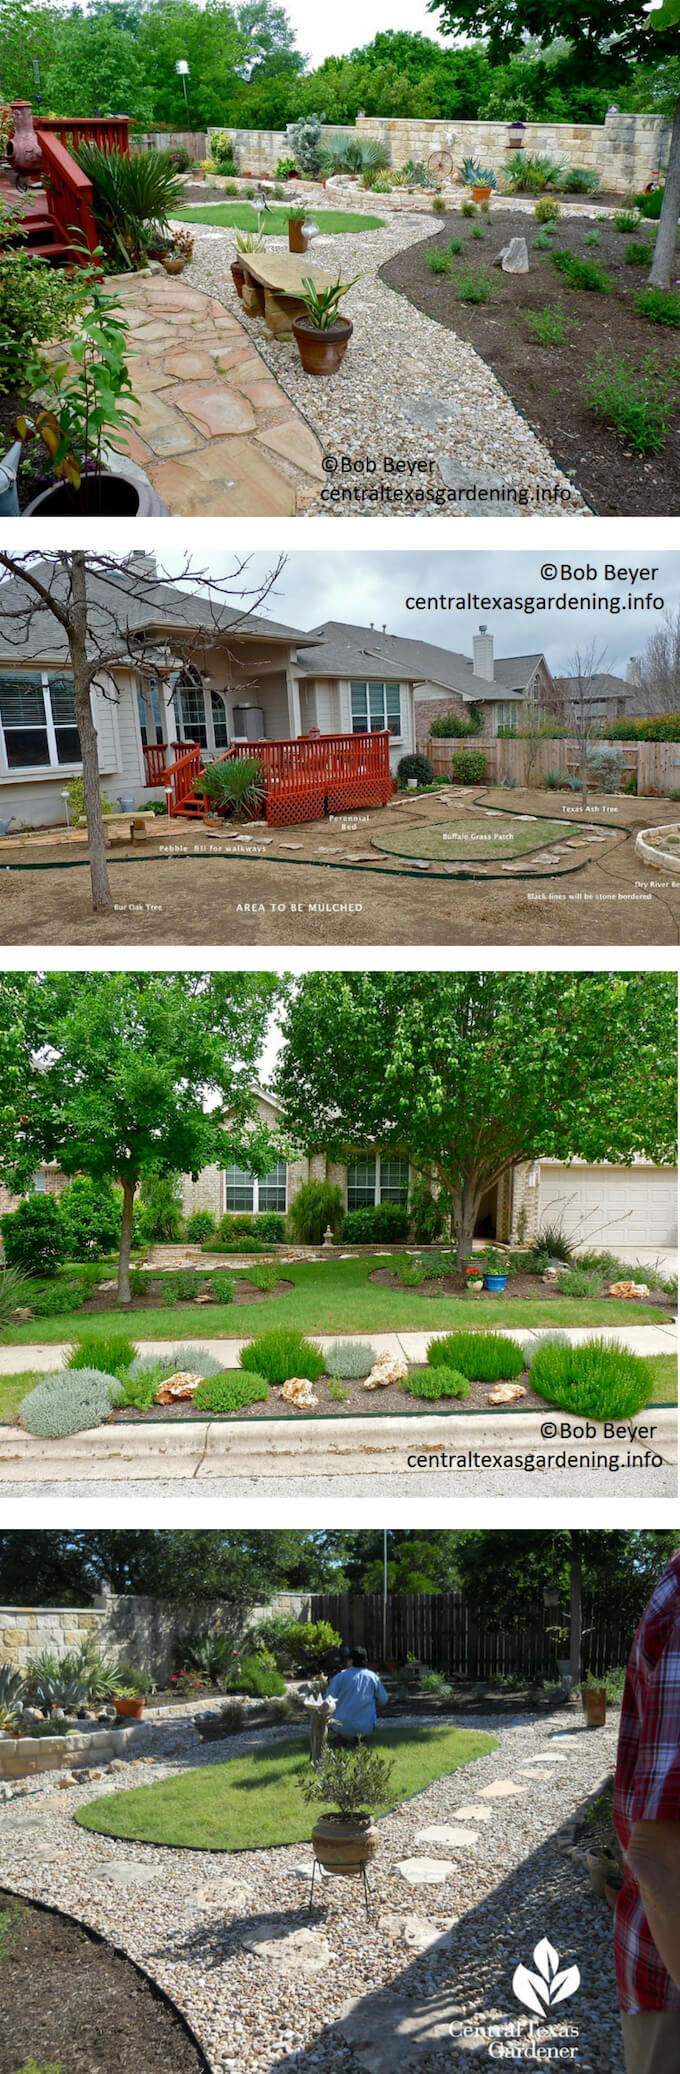 44+ Best Landscaping Design Ideas Without Grass - No Grass ... on Backyard Ideas Without Grass  id=20050